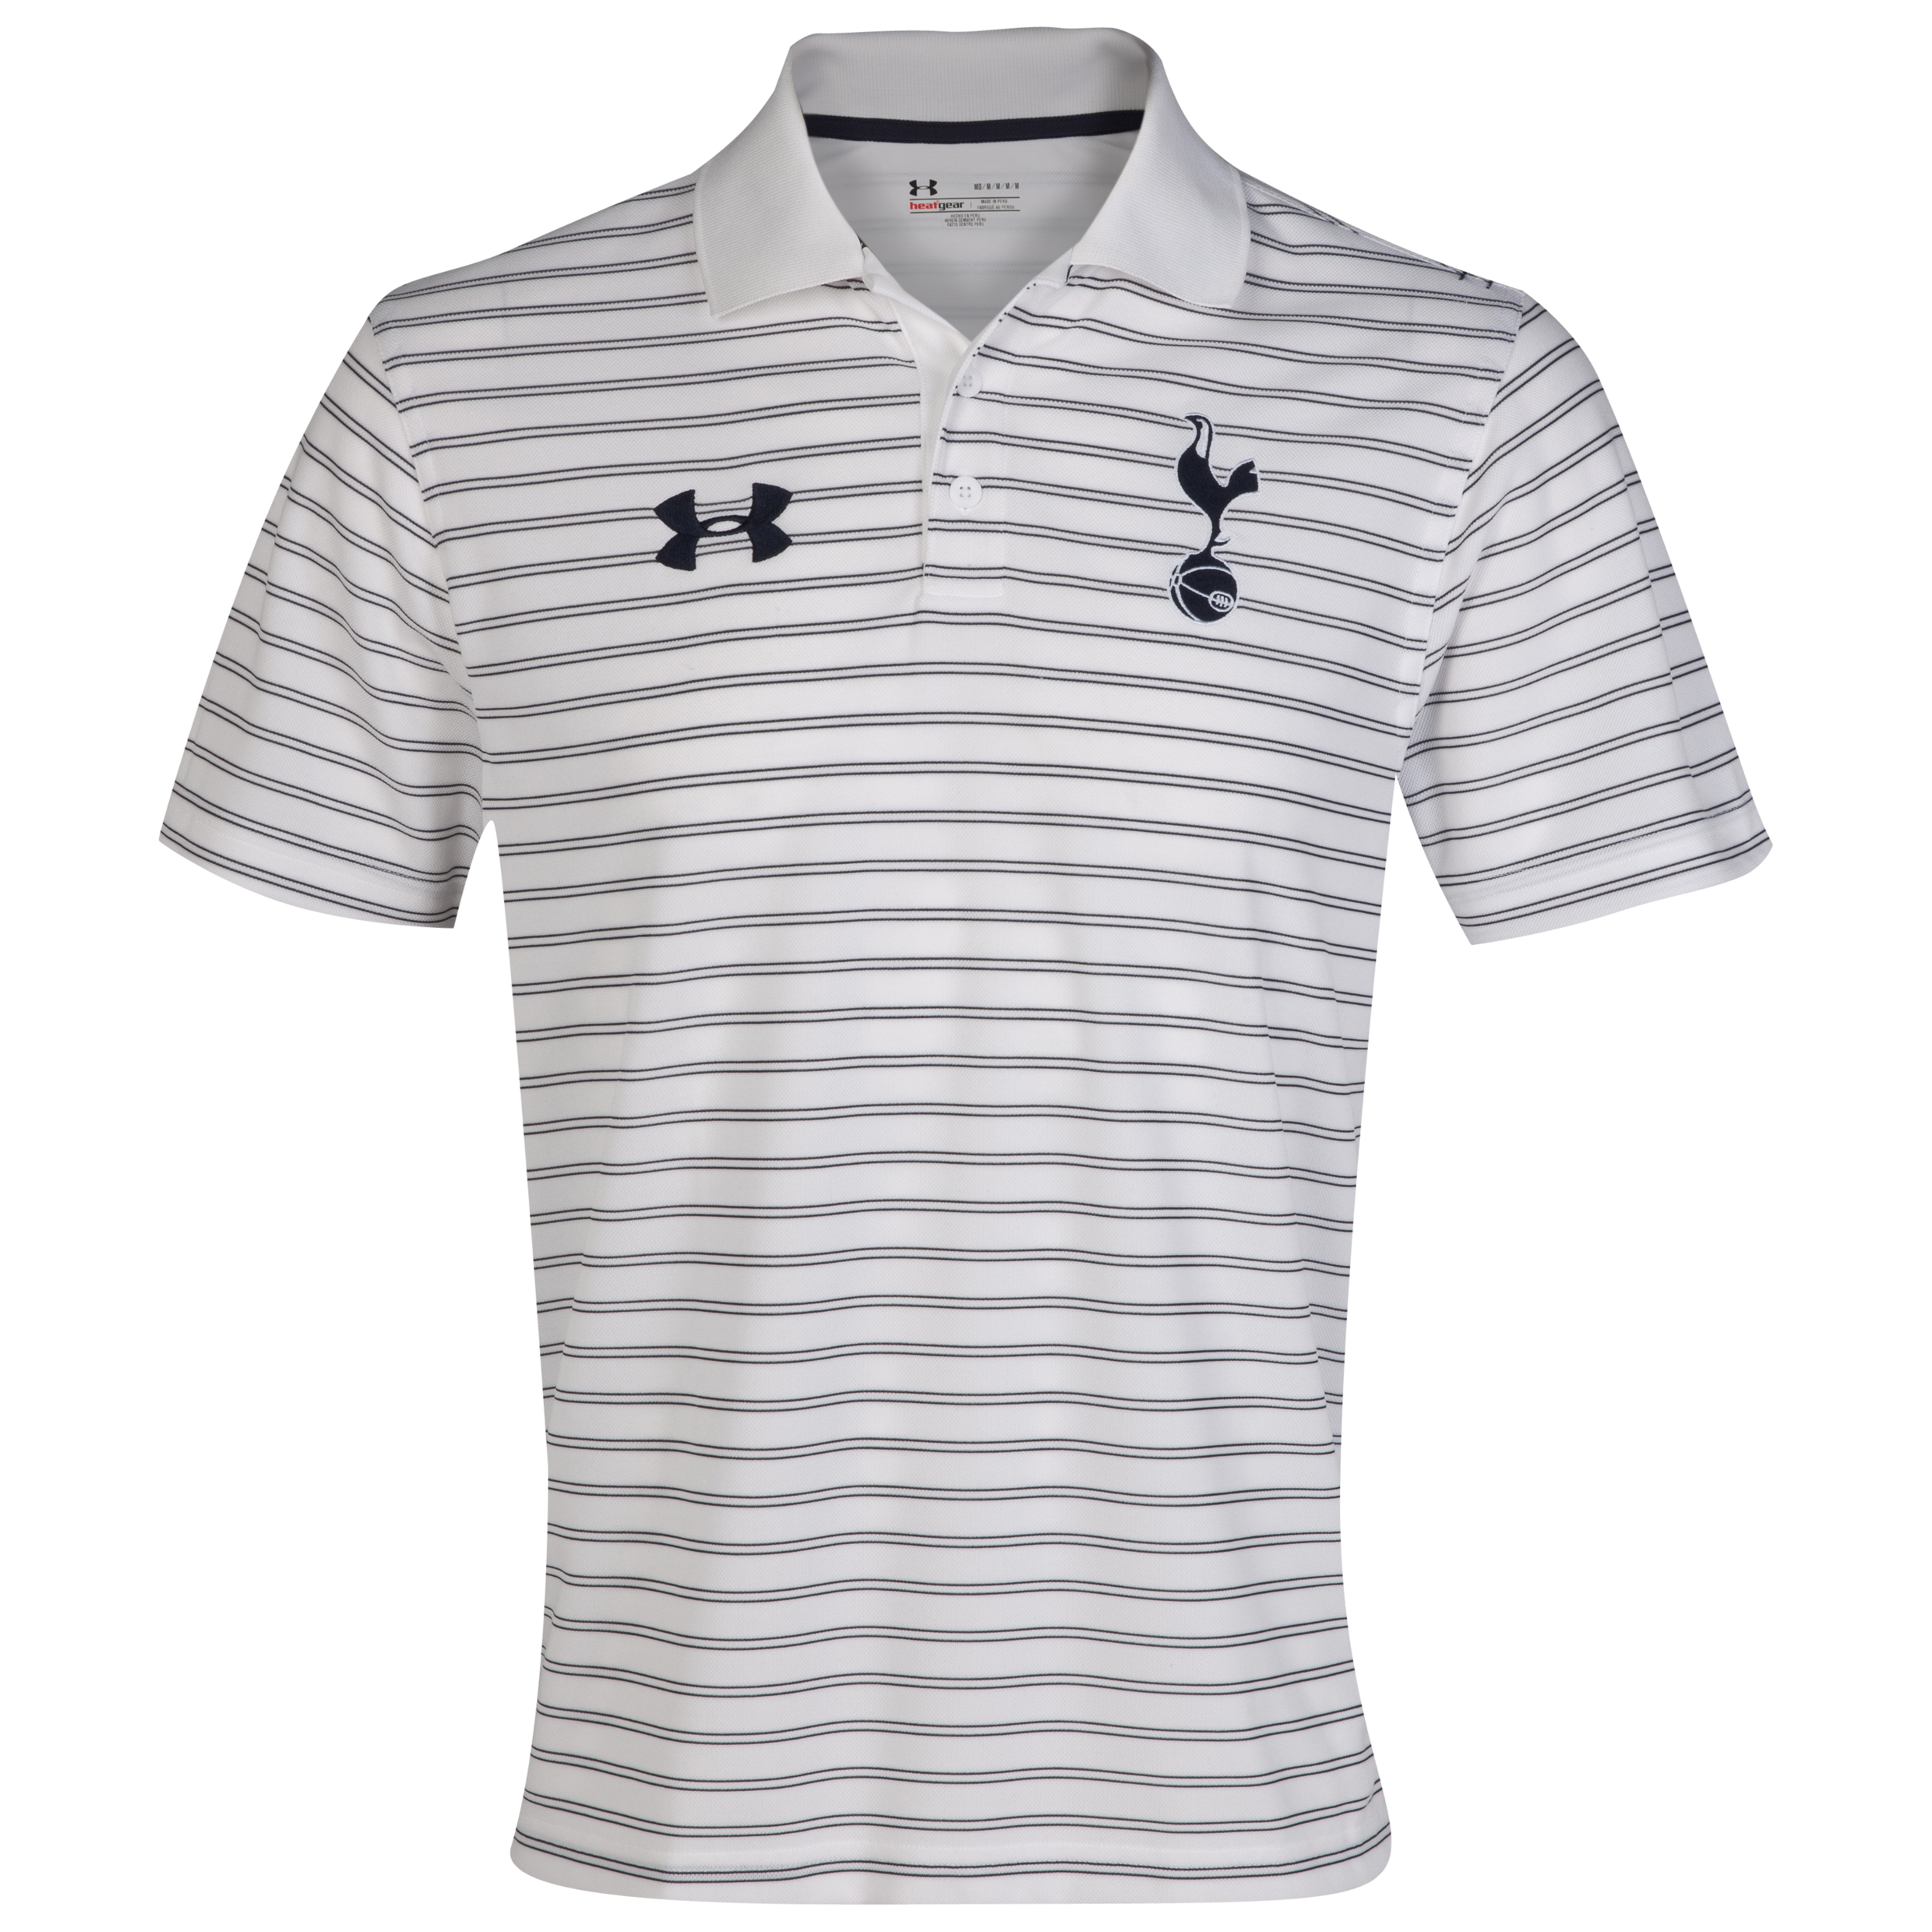 Tottenham Hotspur Drawstripe Polo - White/Midnight